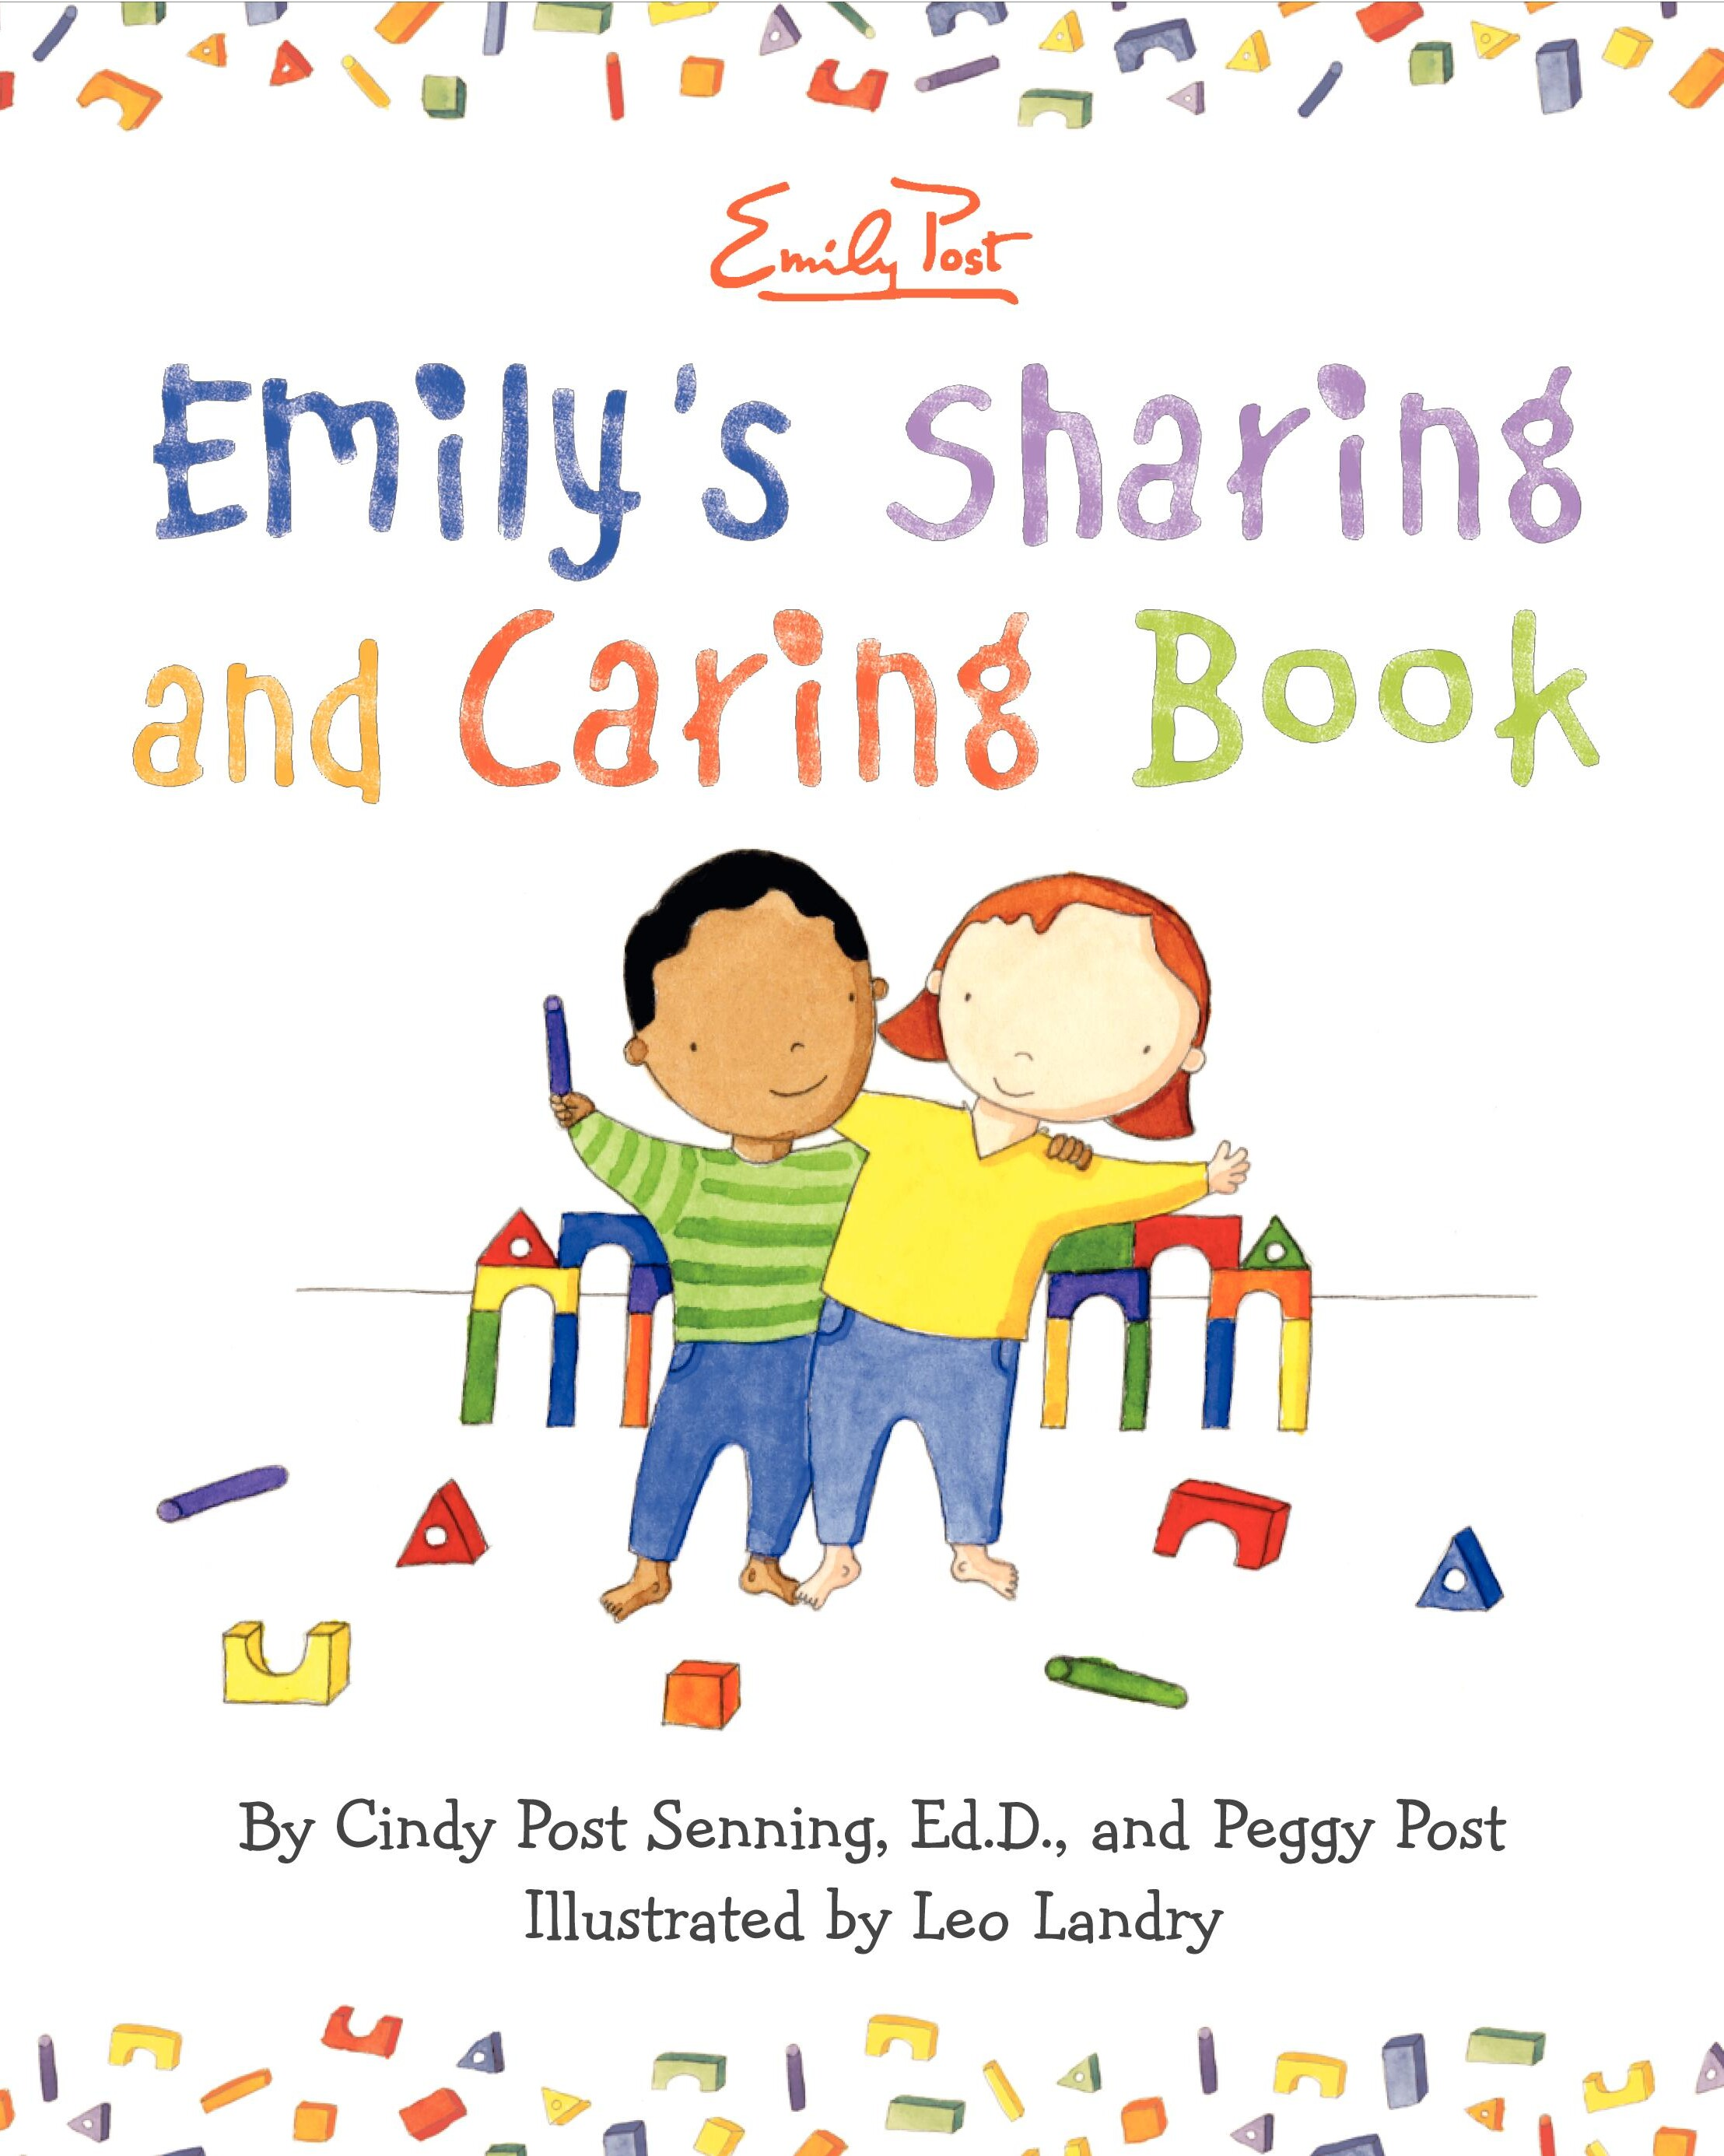 cover image of Emily's Sharing and Caring showing title and two children with arms arround each other holding colorful blocks